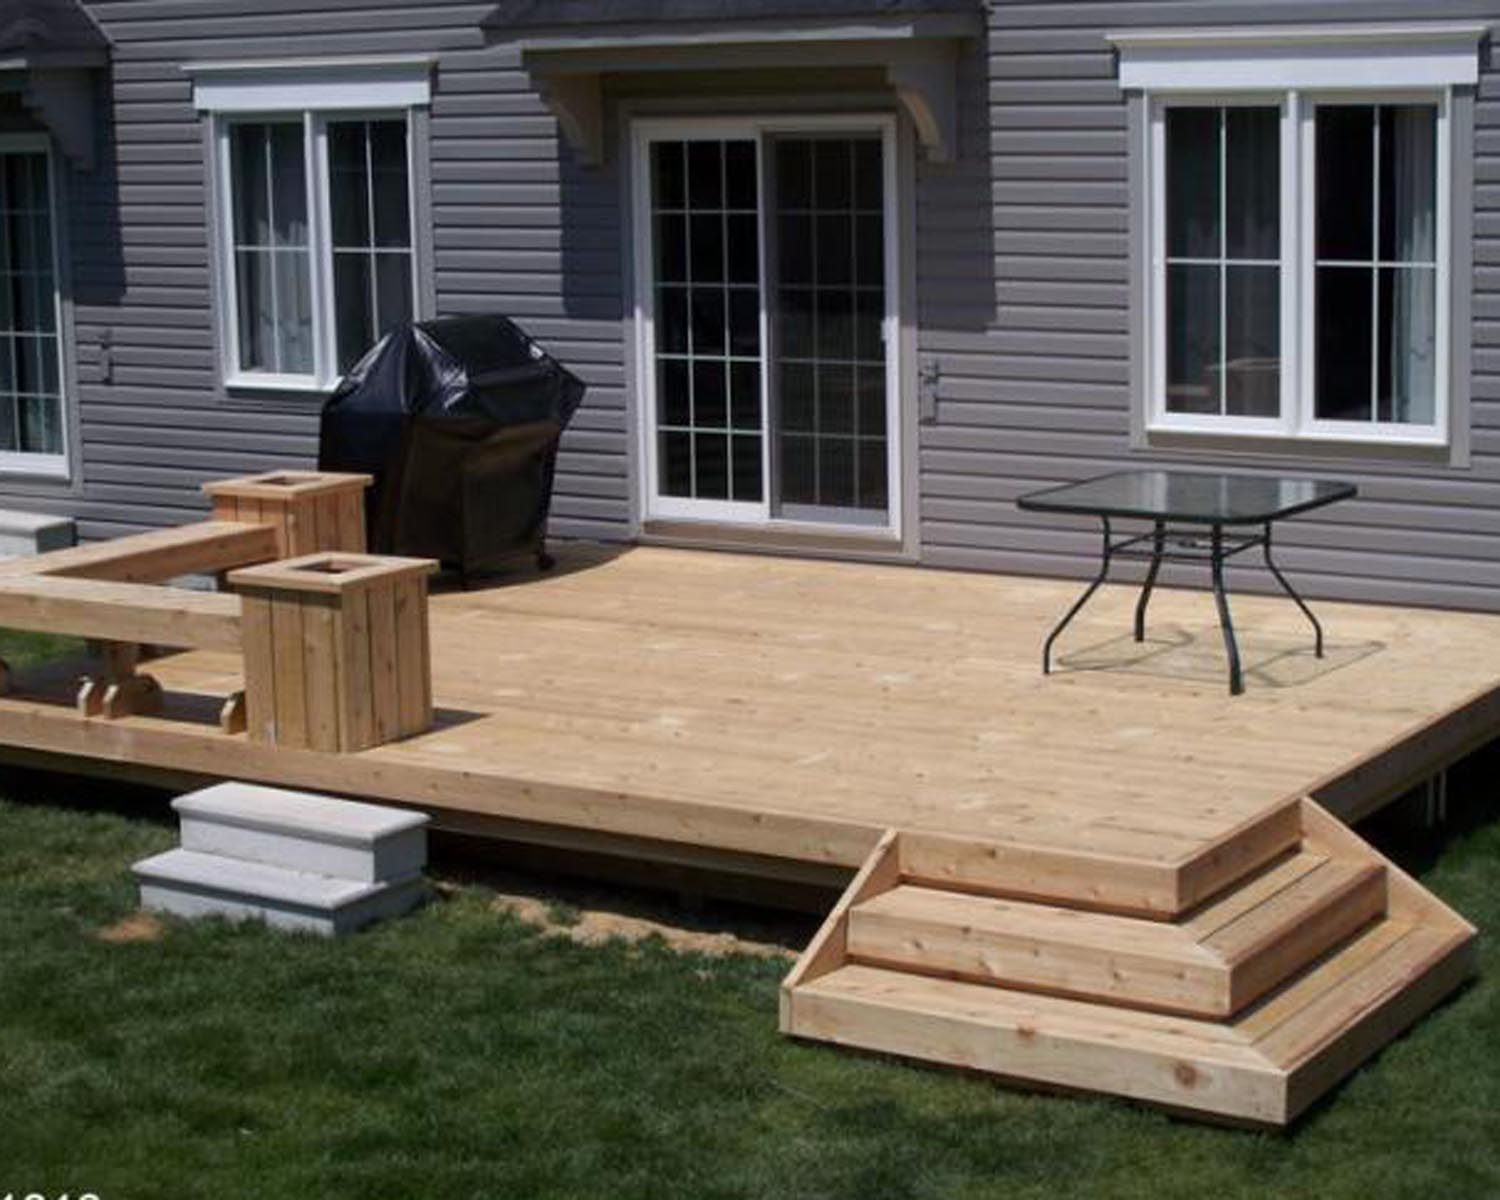 Deck Design Ideas outdoor grabbing exterior beauty with small backyard deck ideas simple decoration for small backyard Deck Ideas Be More When Deck Building Simple But Functional Designs Can